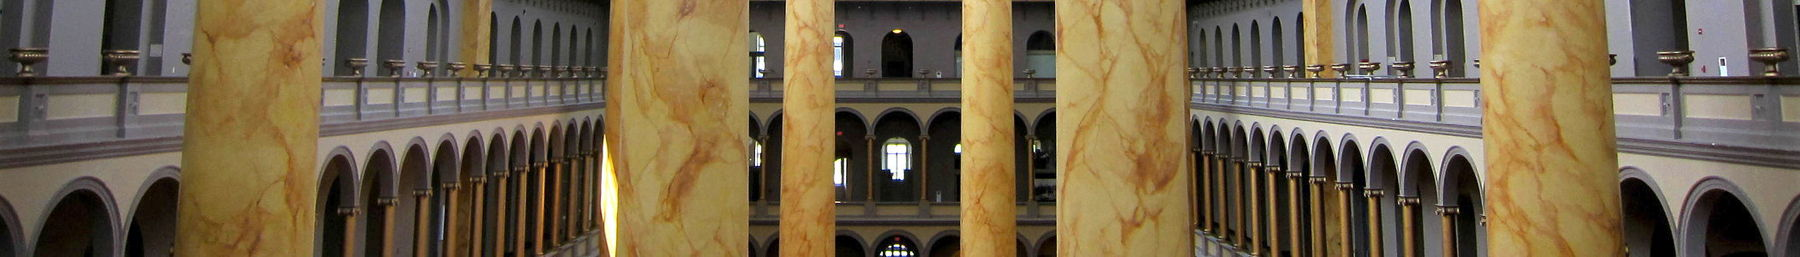 Inside the National Building Museum